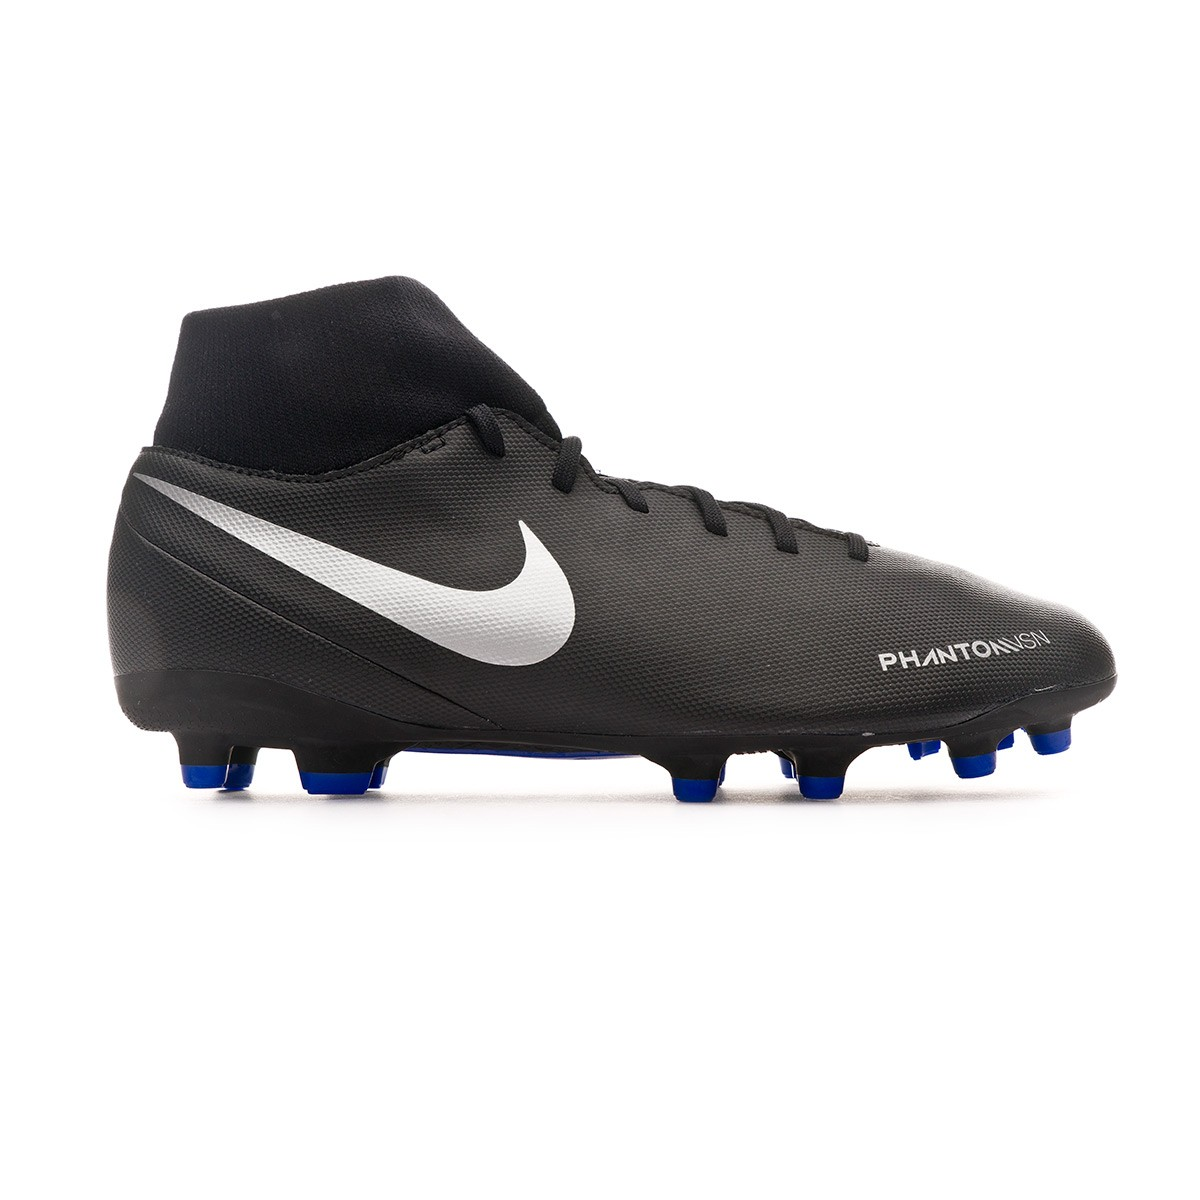 47f61a6fb771c Football Boots Nike Phantom Vision Club DF FG MG Black-Metallic  silver-Racer blue - Tienda de fútbol Fútbol Emotion